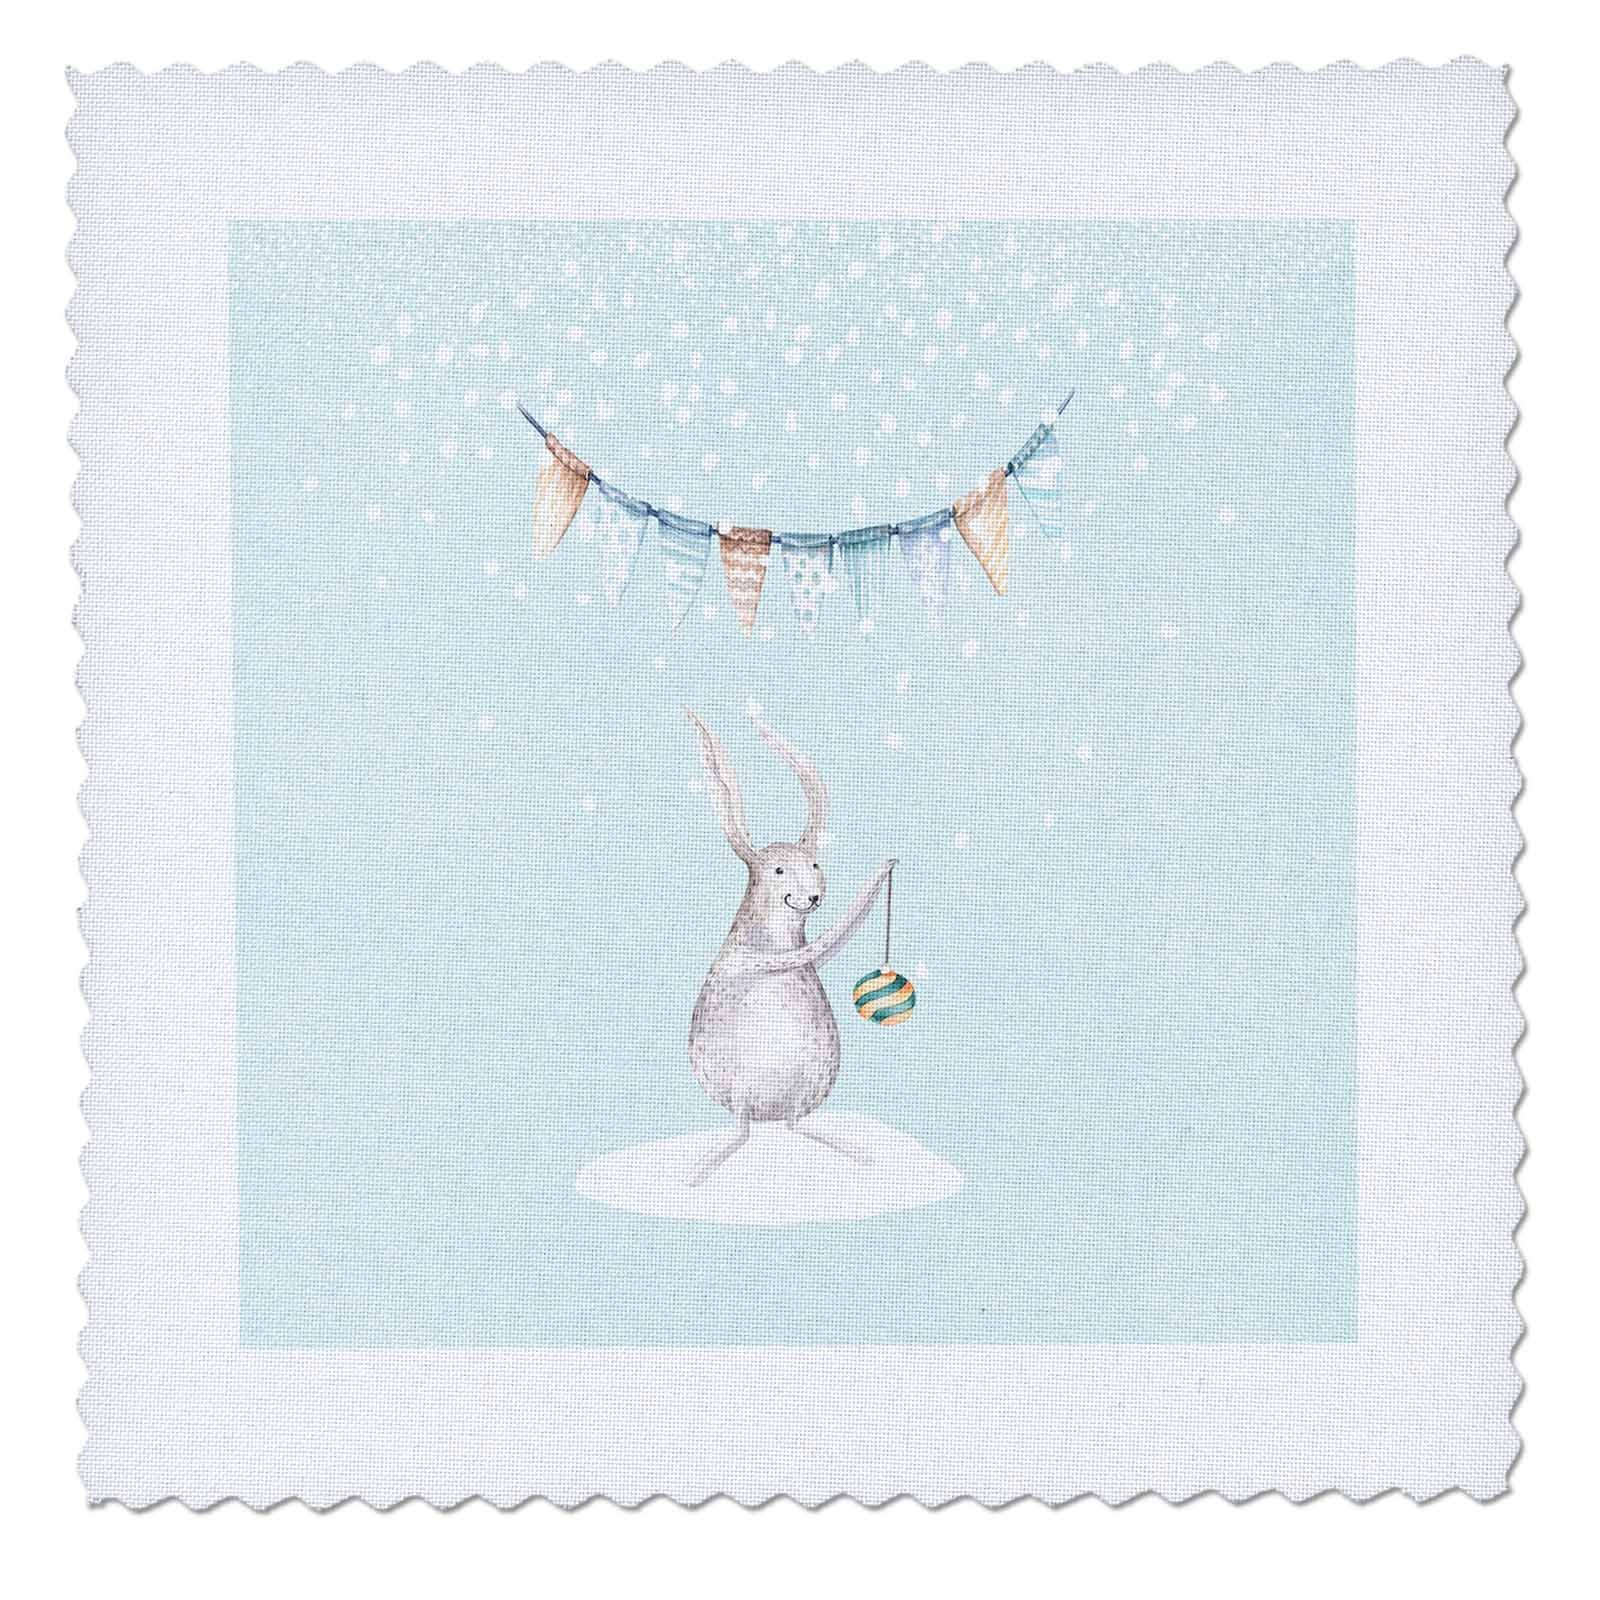 3dRose Uta Naumann Watercolor Illustration Animal - Cute Animal Illustration of a Deer in Winter Snow- For Children - 16x16 inch quilt square (qs_269055_6)